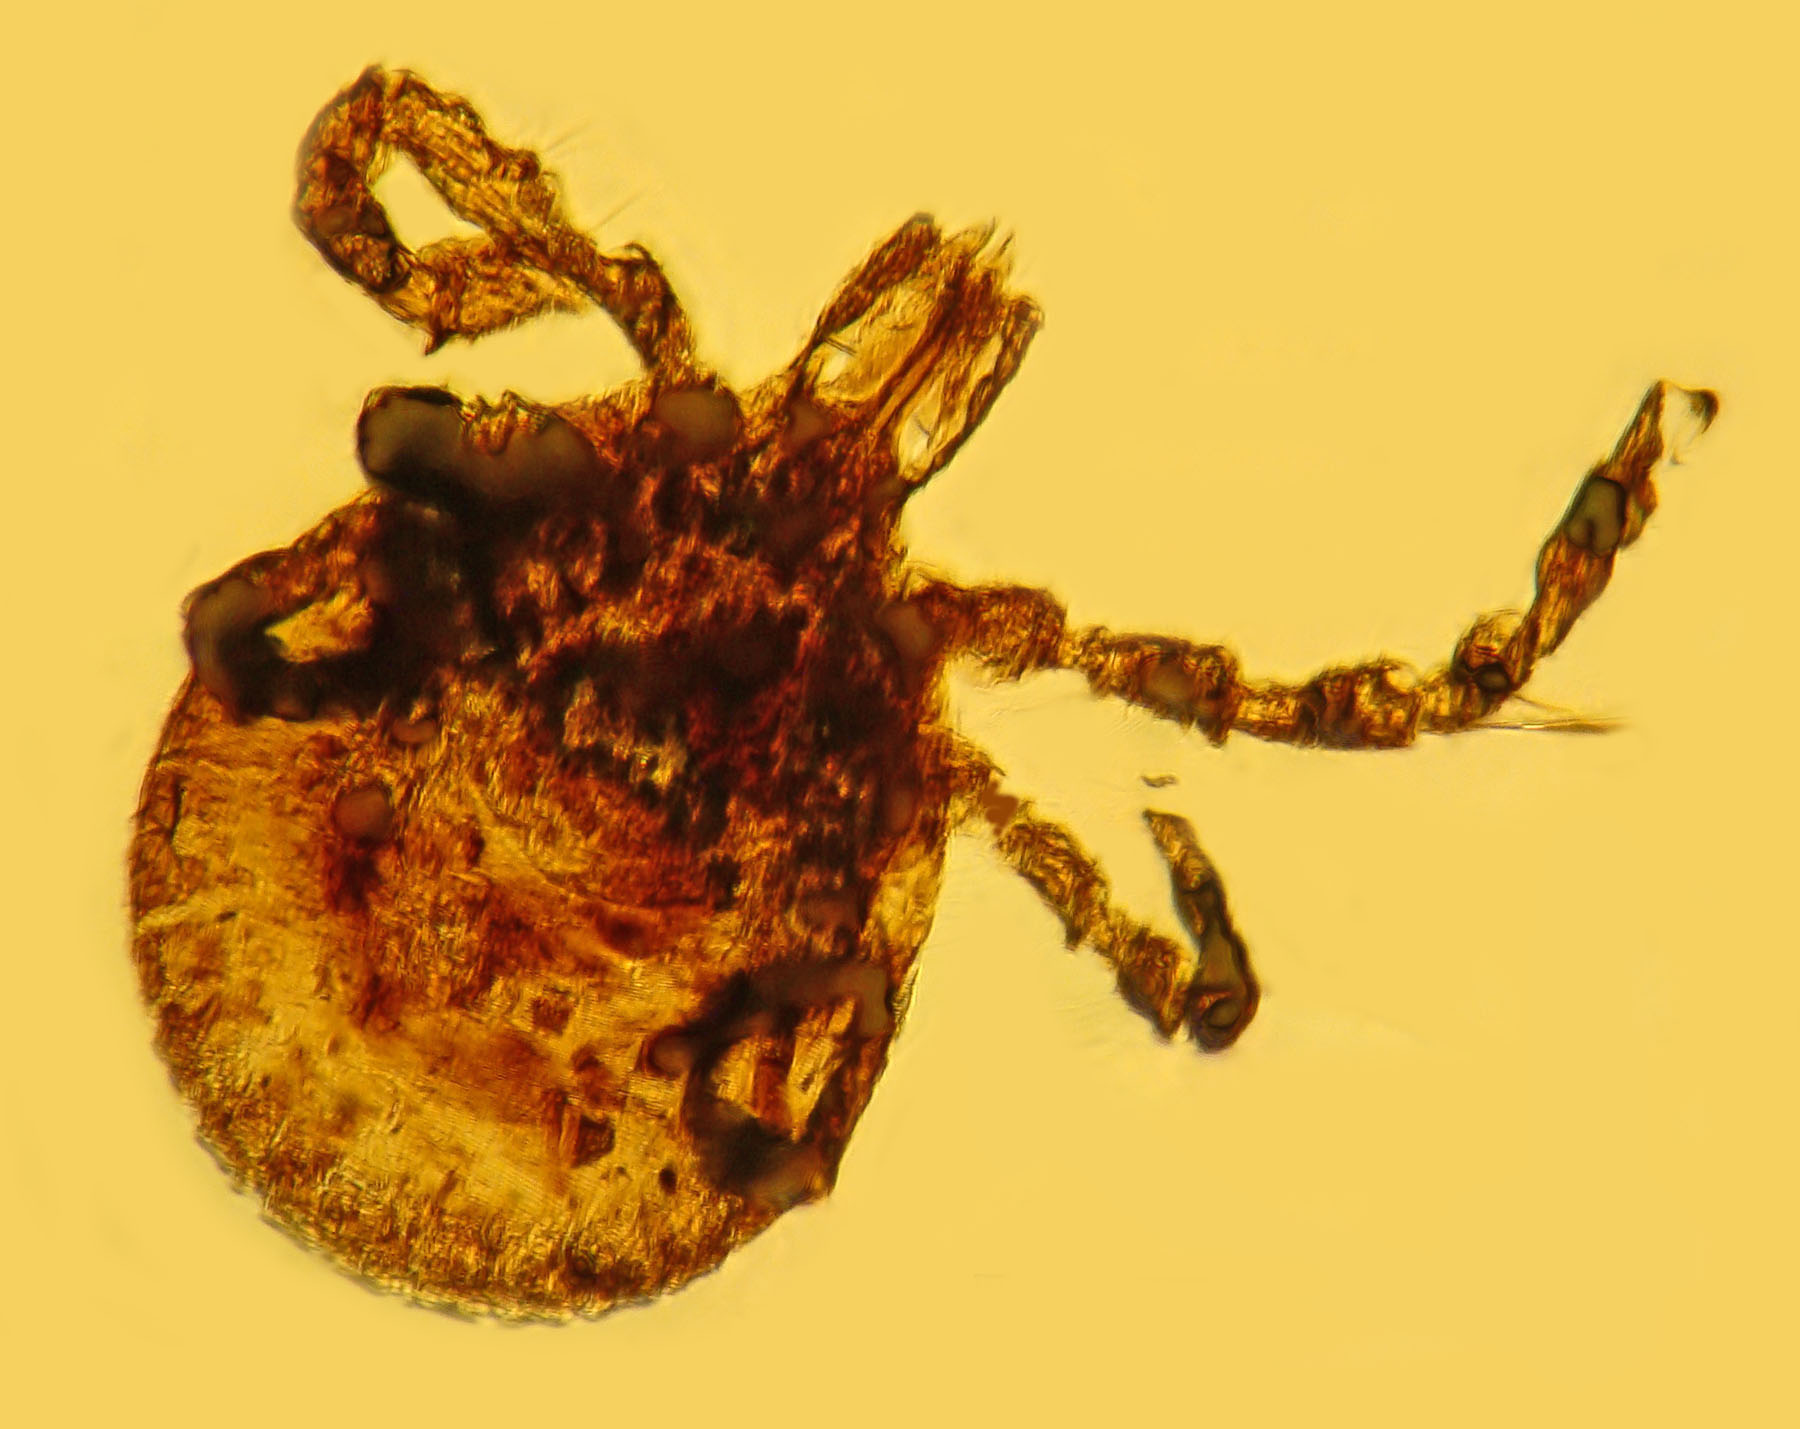 A tick preserved in prehistoric amber. They've been around a long time, and they're not going anywhere. (Photo/George Poinar Jr., Oregon State University)